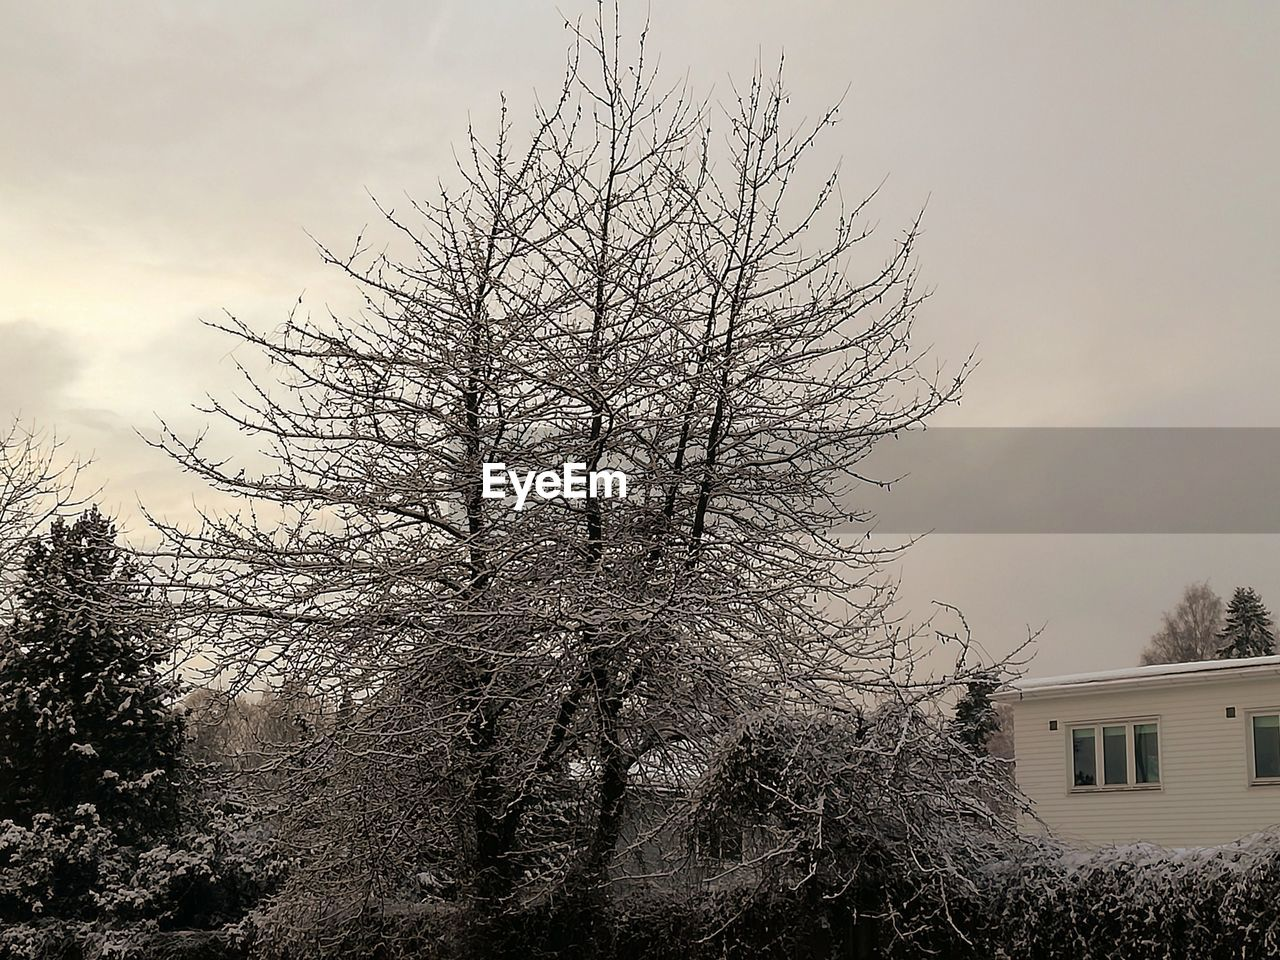 tree, sky, building exterior, bare tree, architecture, built structure, plant, nature, building, no people, house, cloud - sky, branch, winter, outdoors, day, low angle view, beauty in nature, residential district